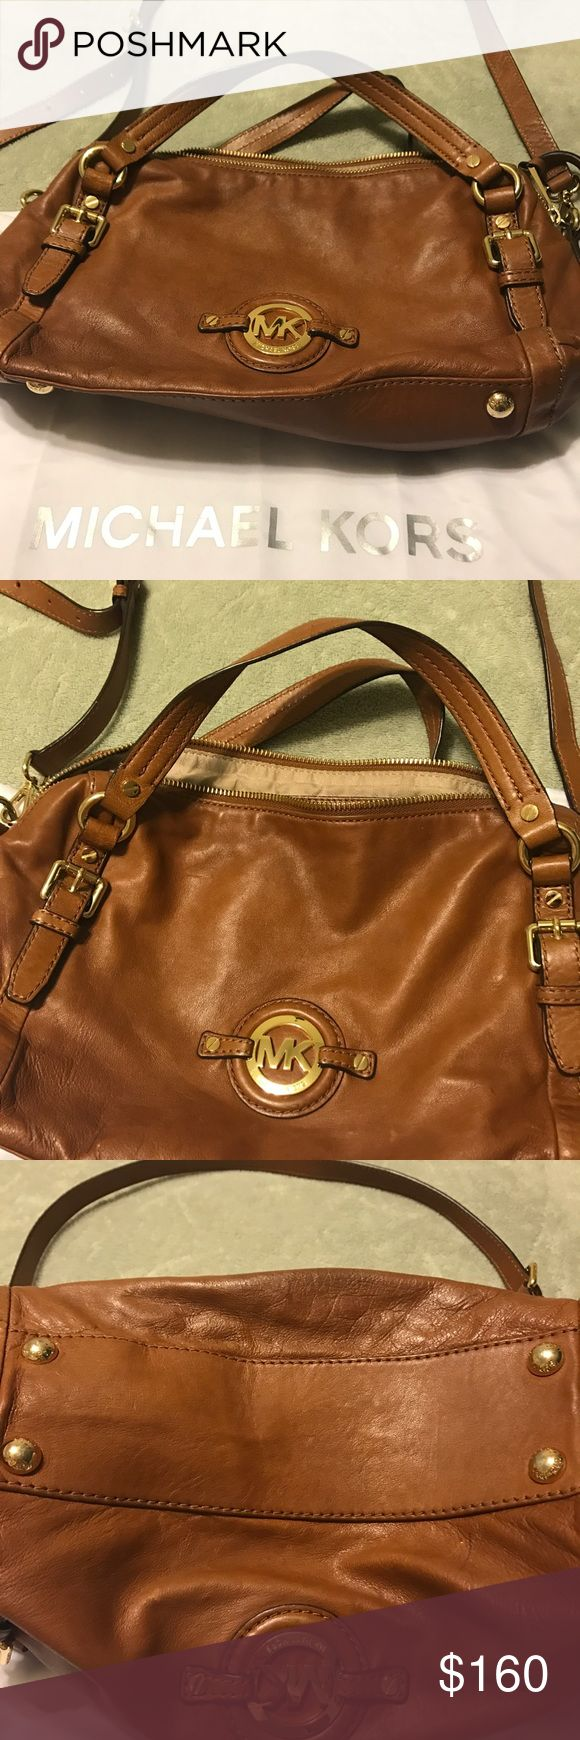 Michael Kors bag Beautiful soft leather brown crossbody handbag. No sign of wear basically new condition. Bags Crossbody Bags